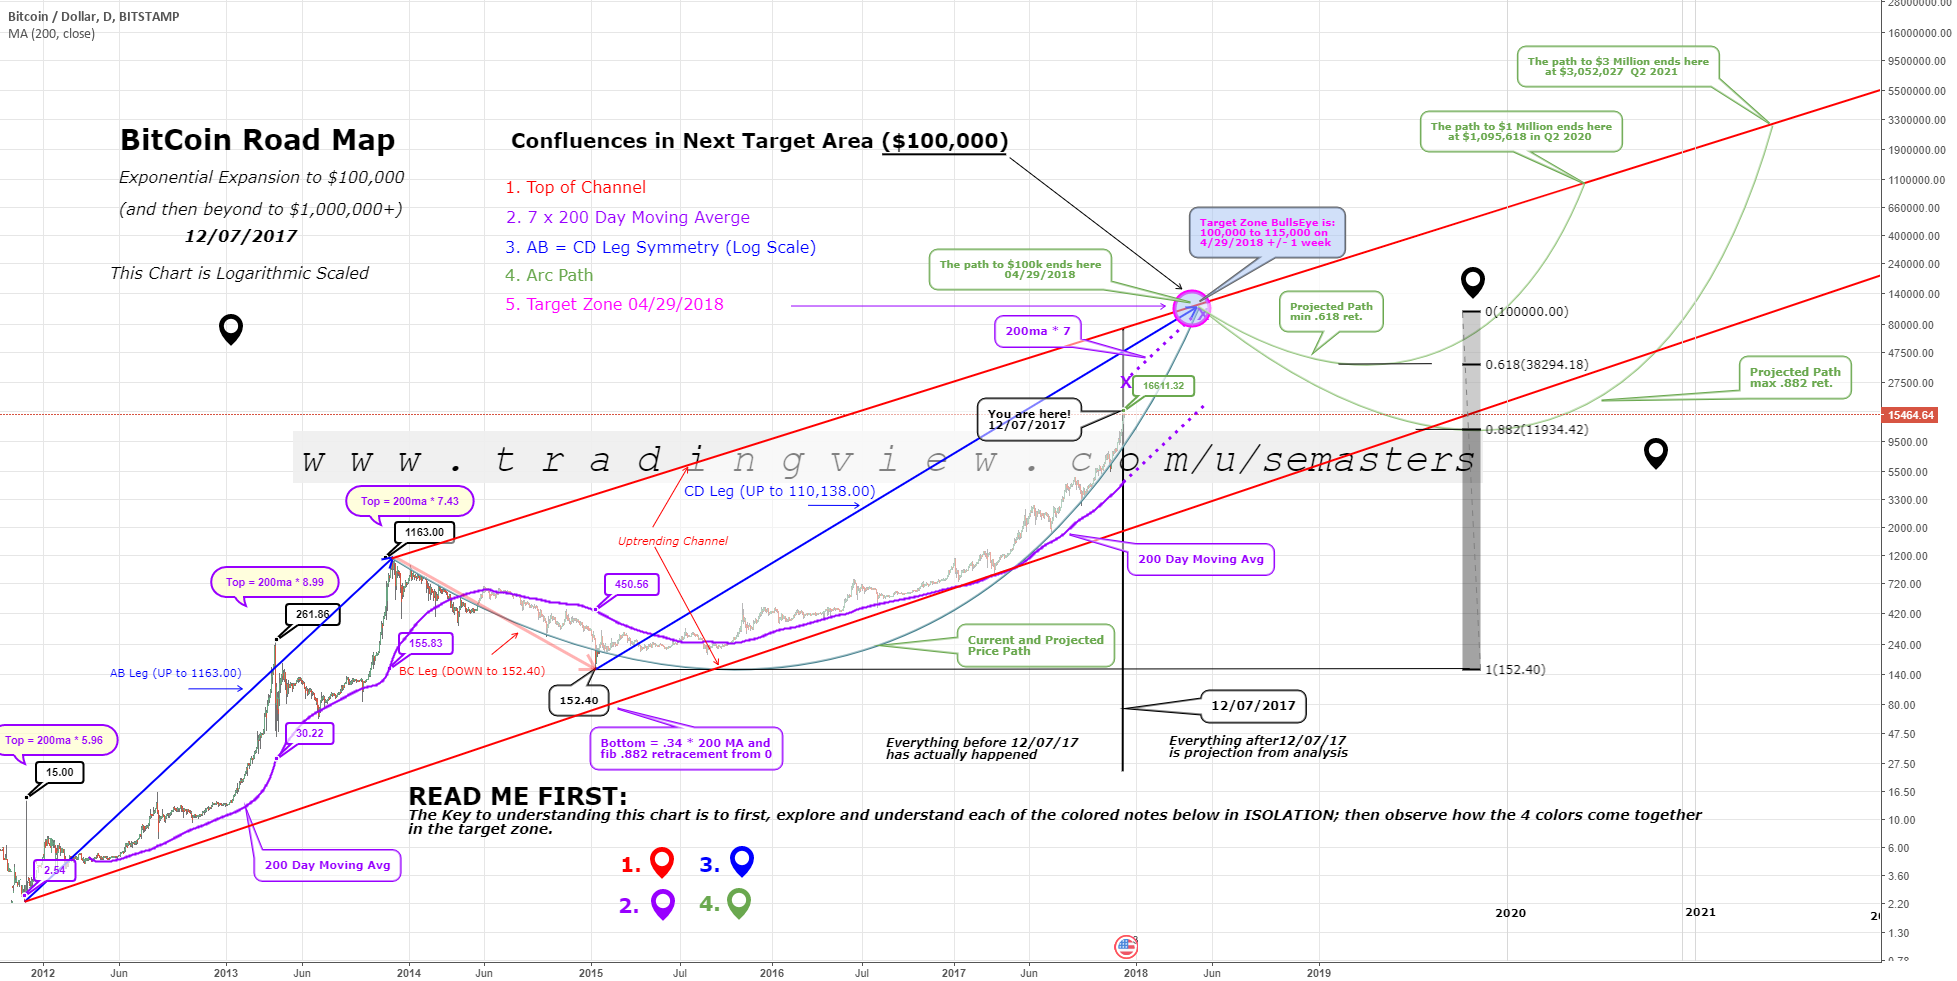 Bitcoin log chart price prediction